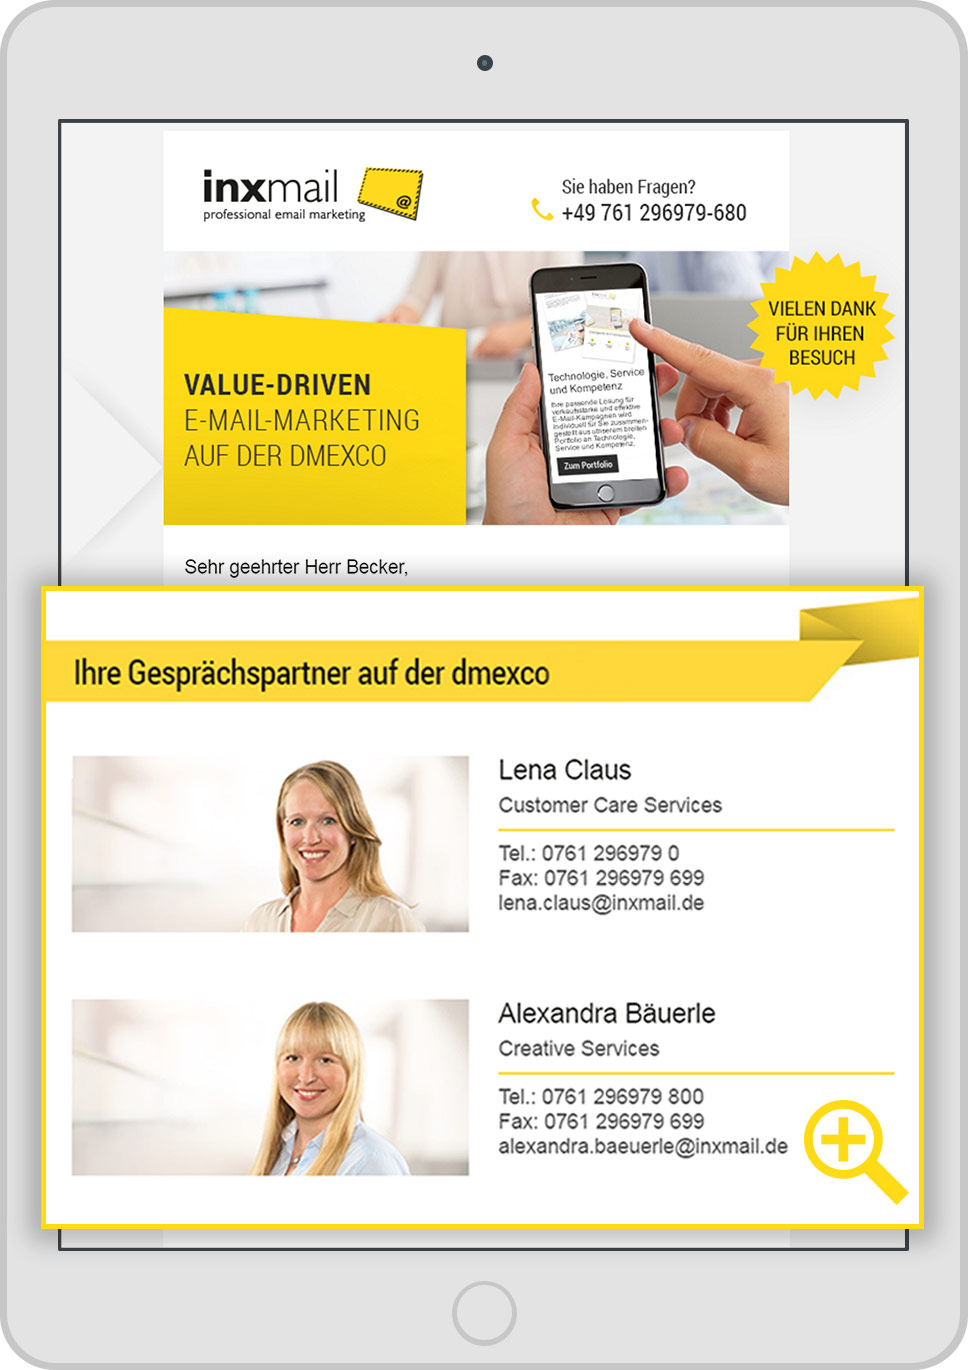 Personalisierung im E-Mail-Marketing bei Kundenmailings